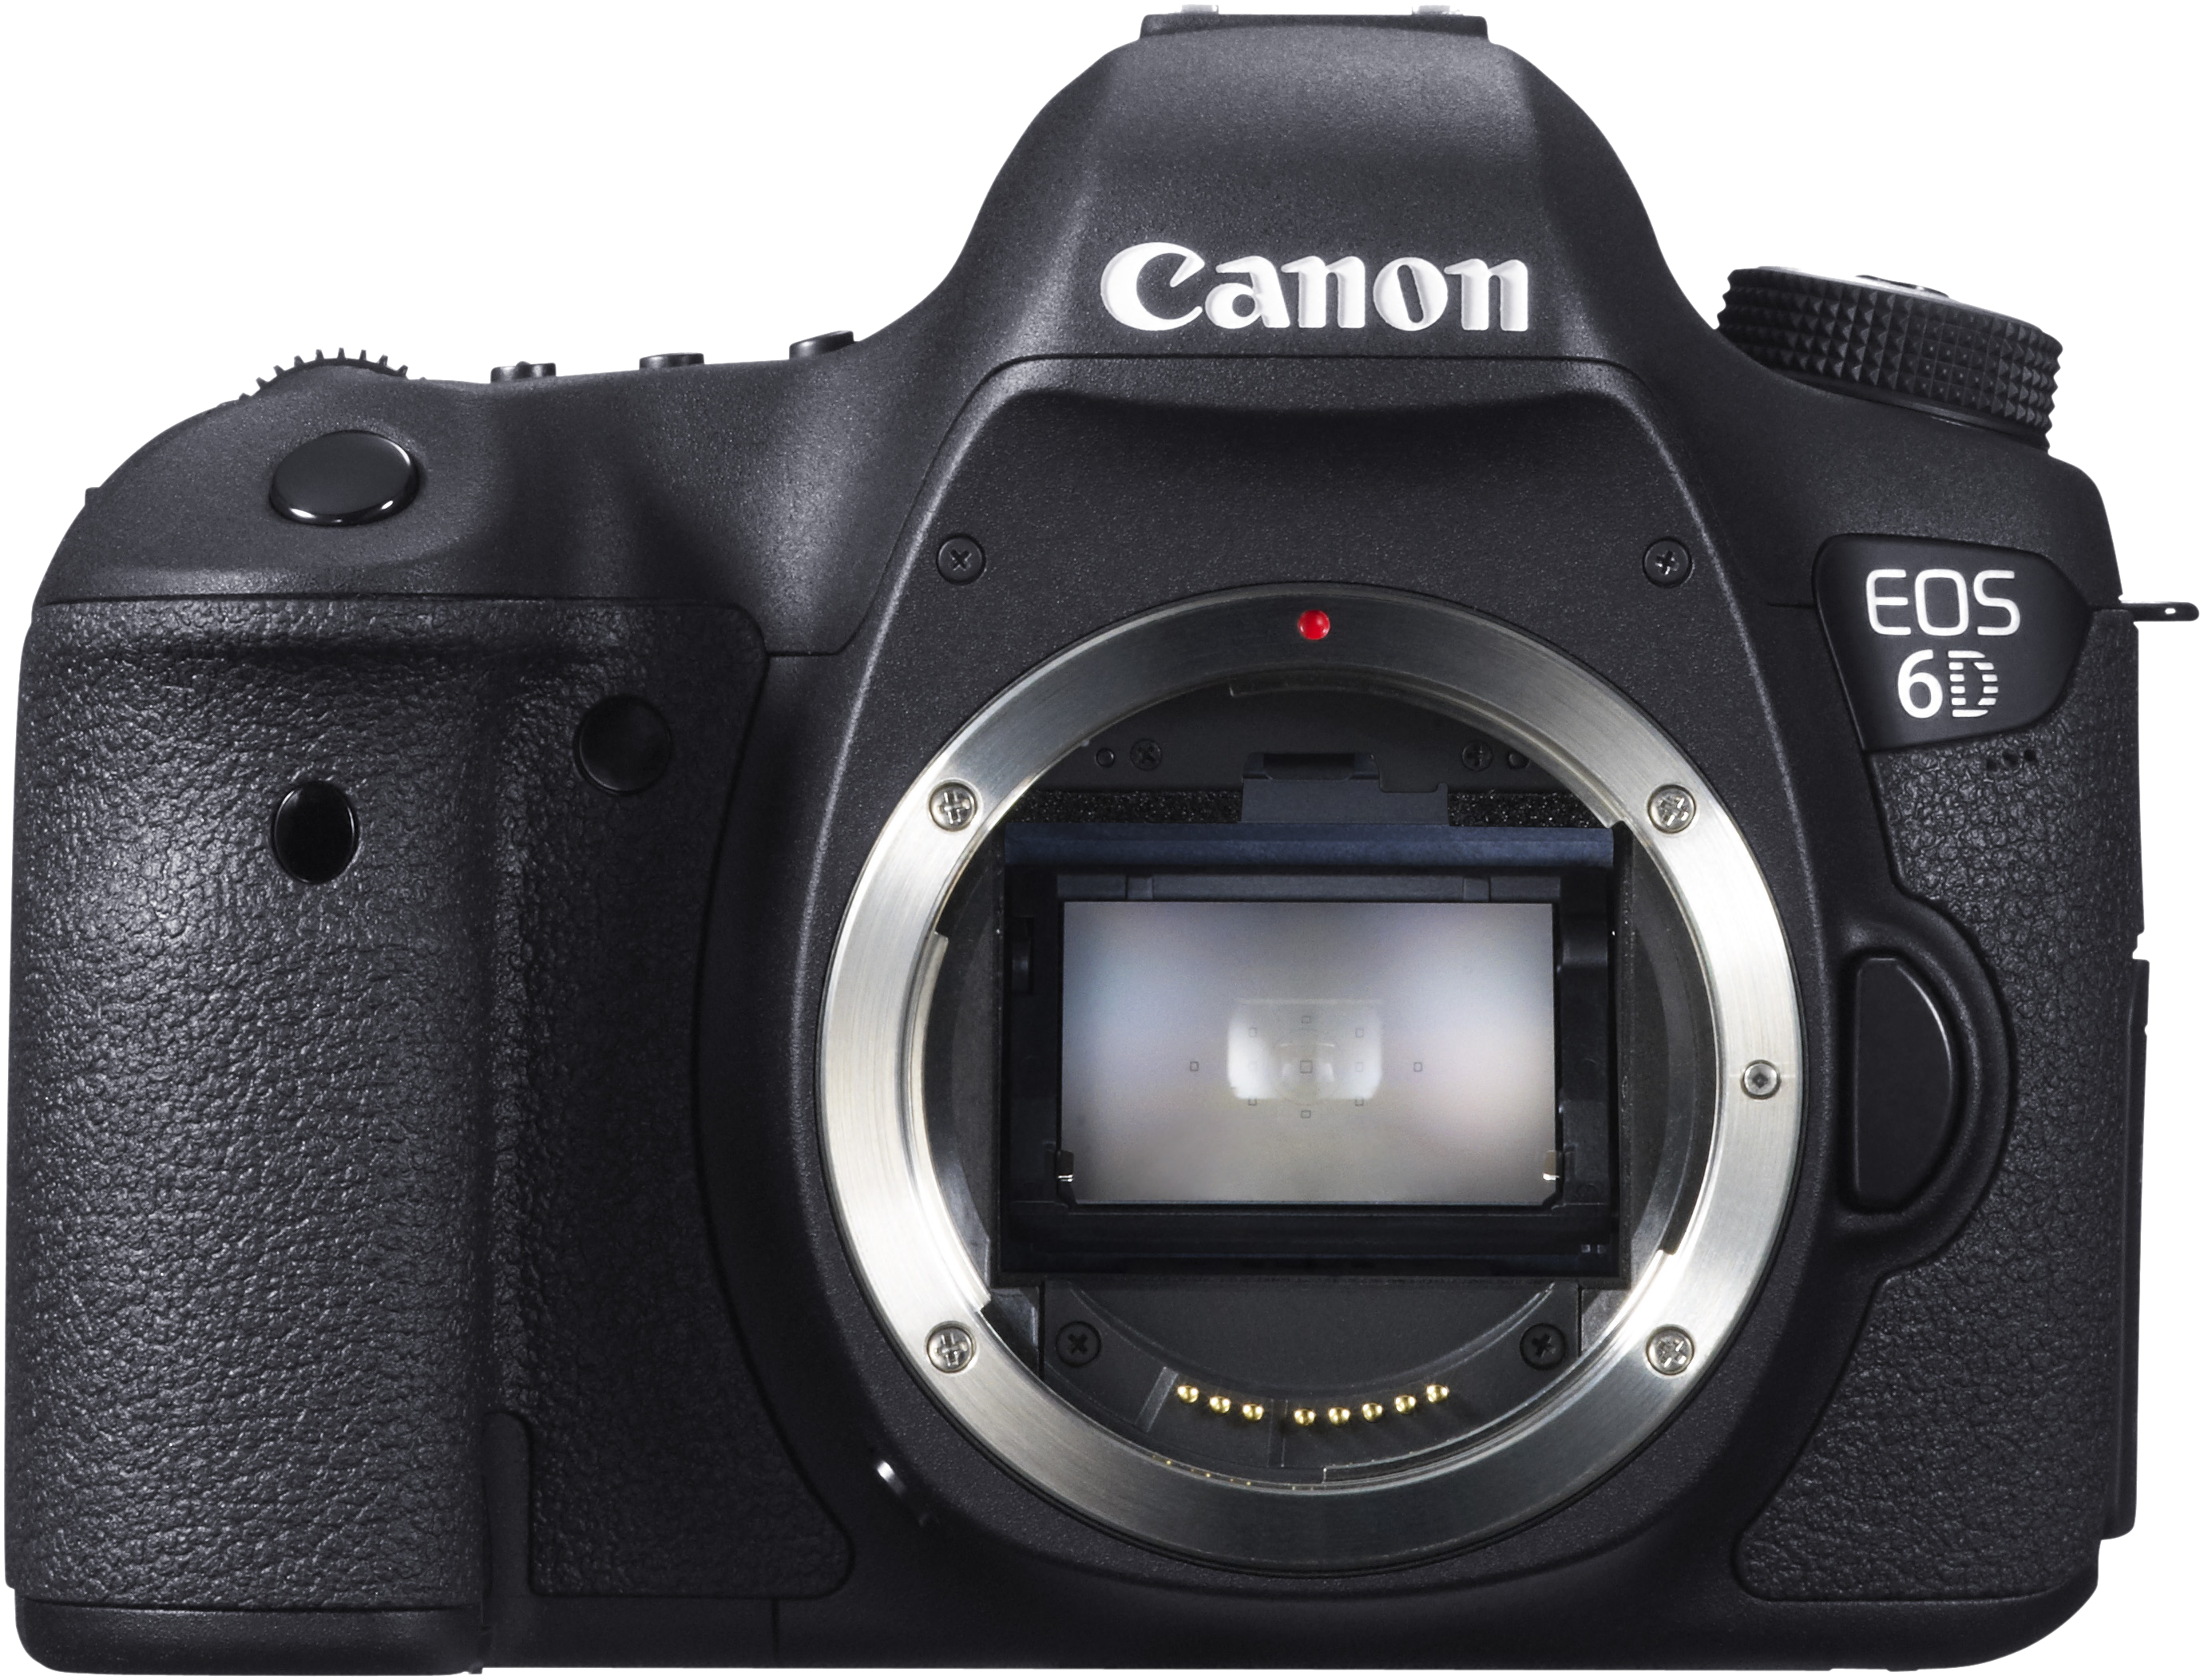 An entry level full frame DSLR featuring Wifi and GPS